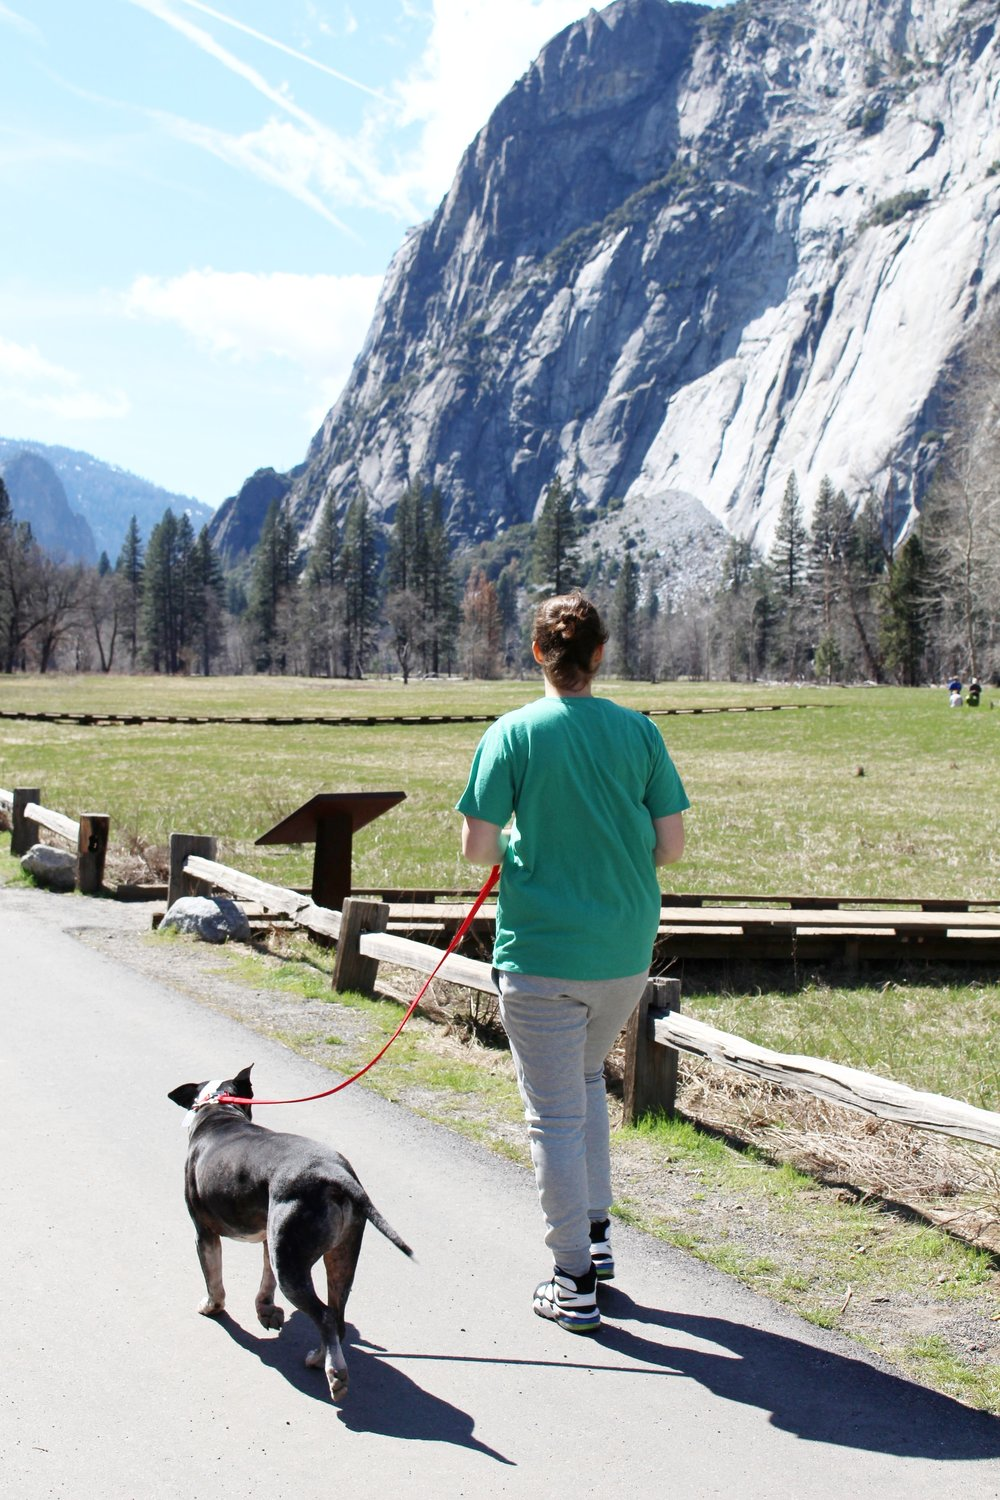 Look at these responsible Yosemite visitors, staying on the paved pathways.